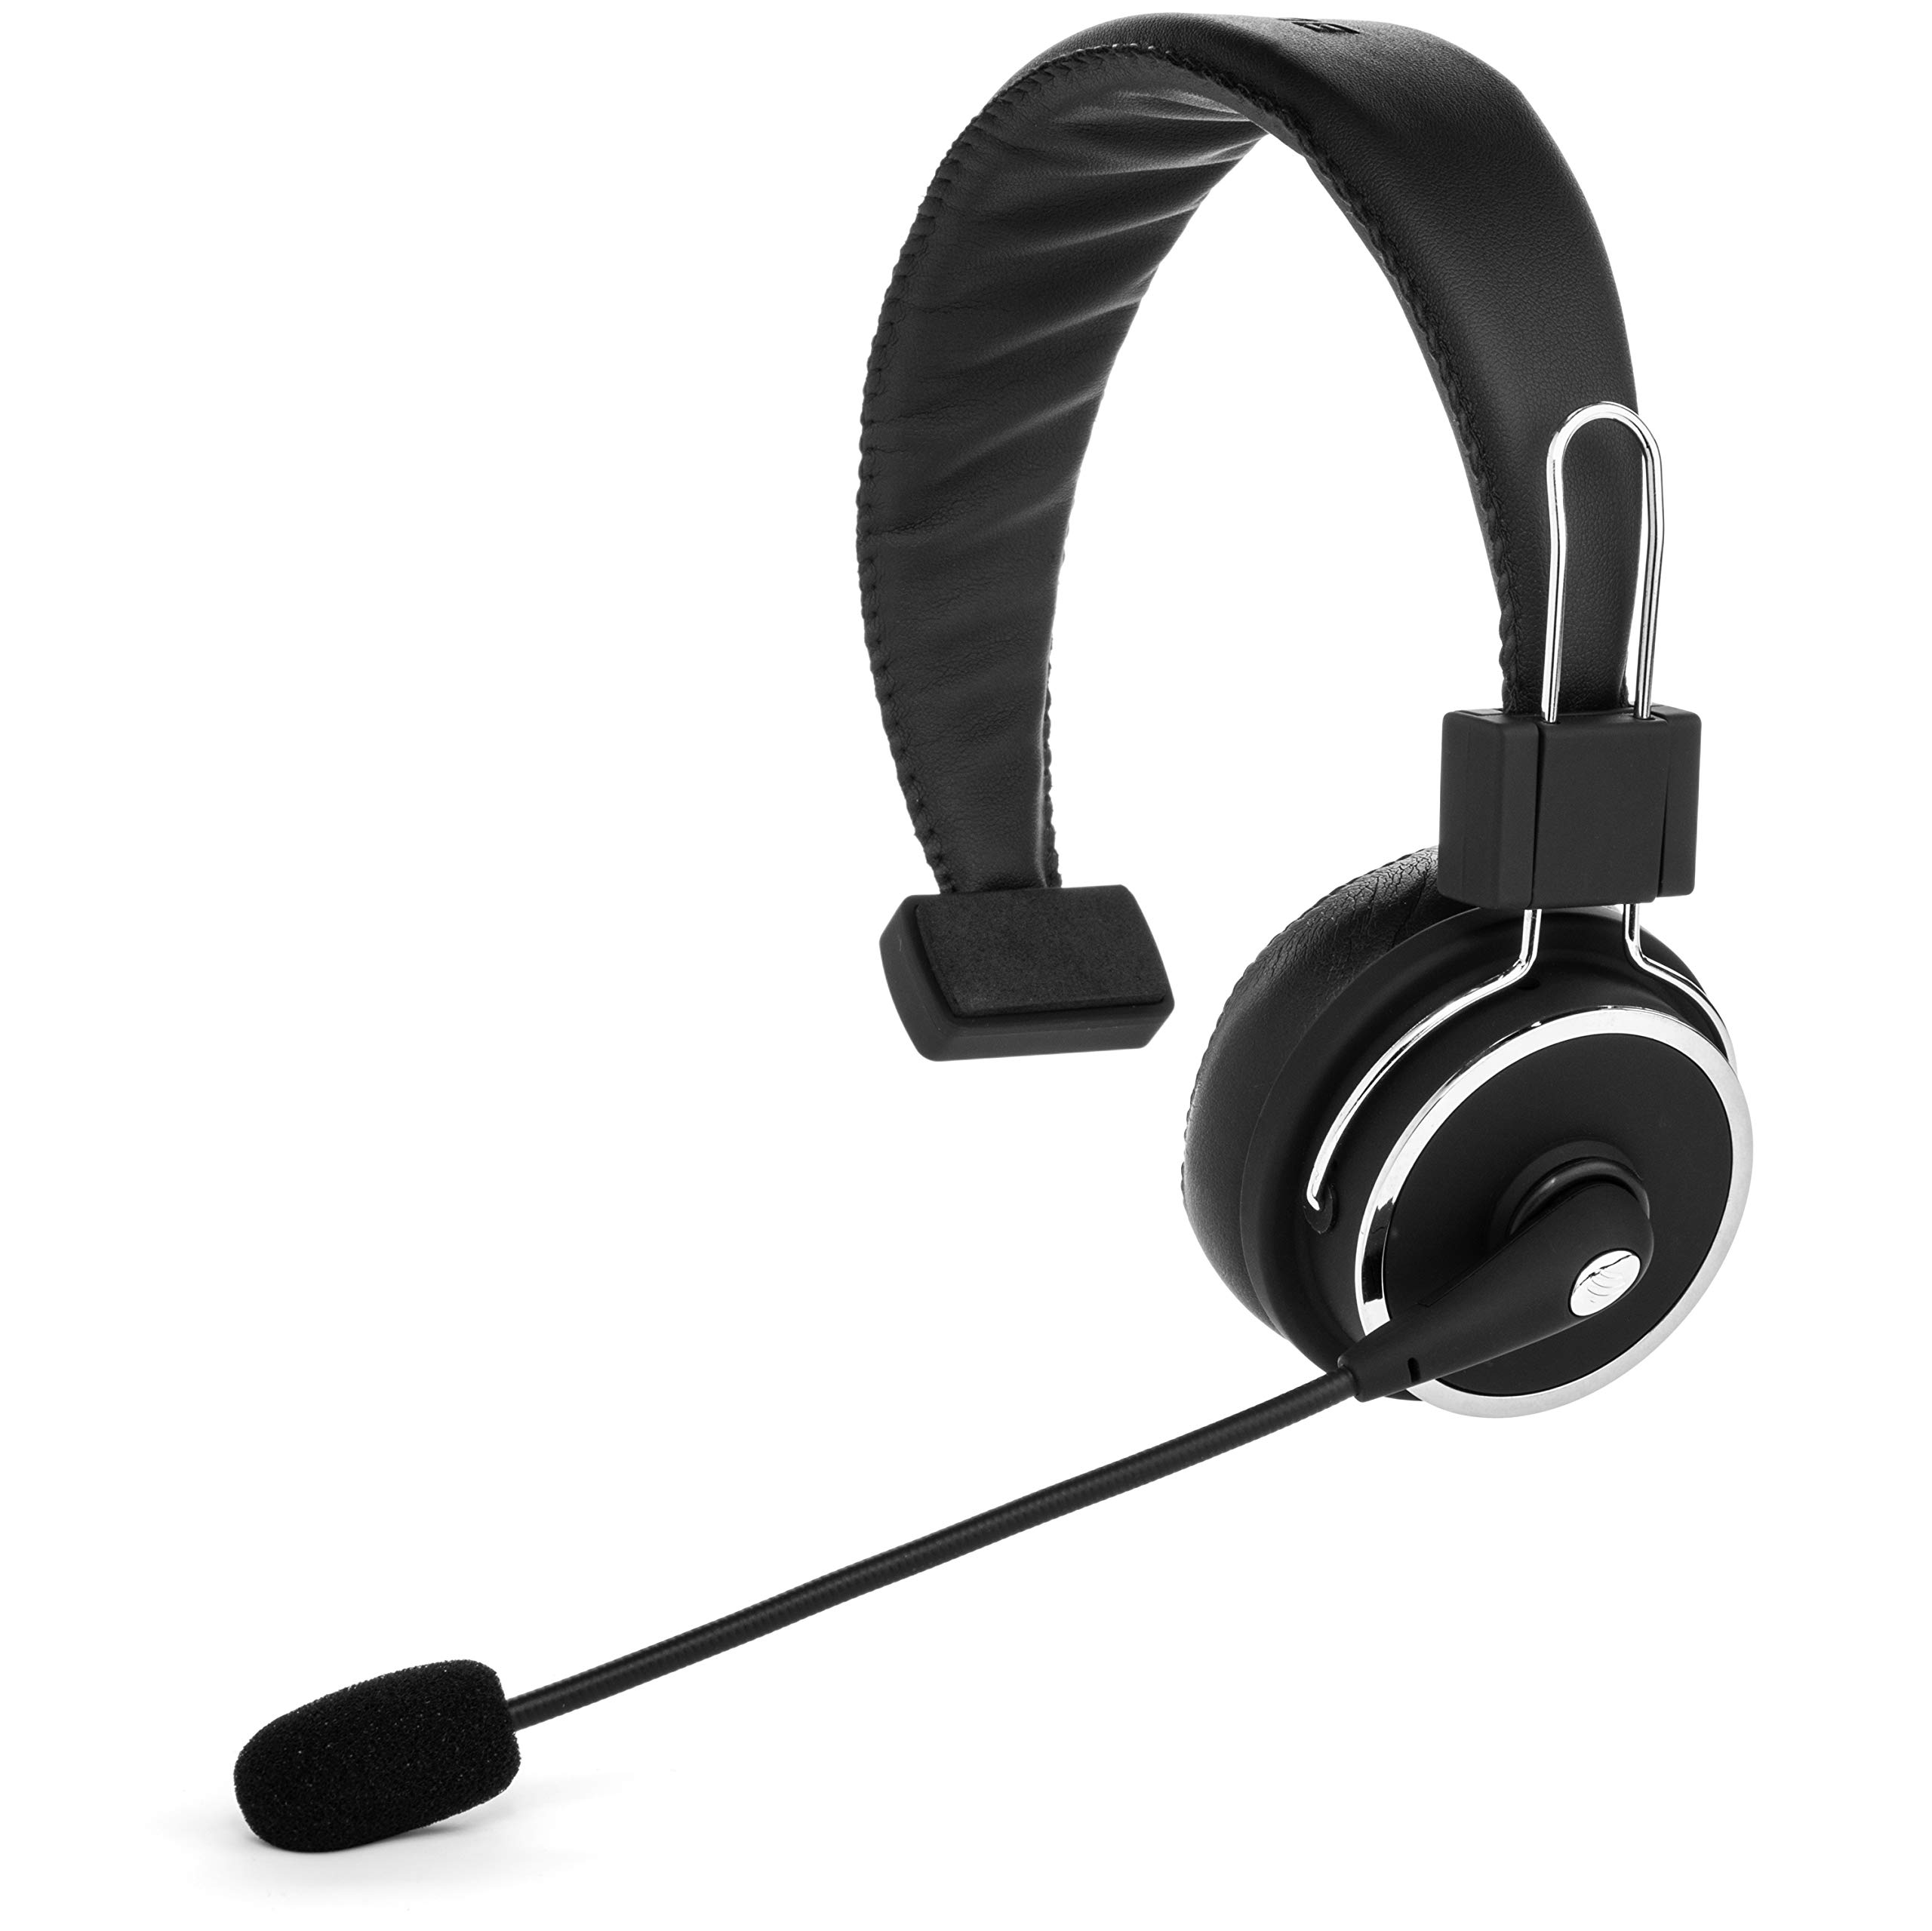 Blue Tiger Elite Premium Wireless Bluetooth Headset - Professional Truckers' Noise Cancellation Head Set with Microphone - Clear Sound, Long Battery Life, No Wires - 34 Hour Talk Time - Black by Blue Tiger